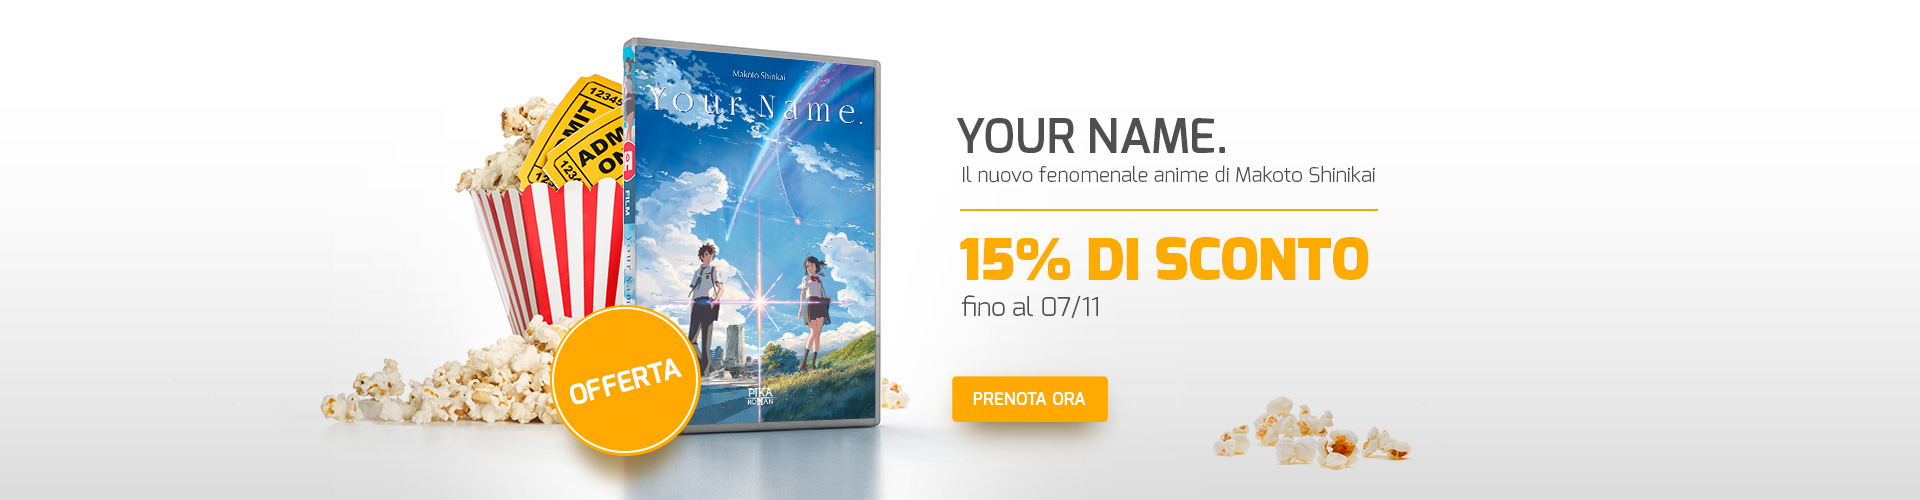 Dvd-it_slider_YourName-2-